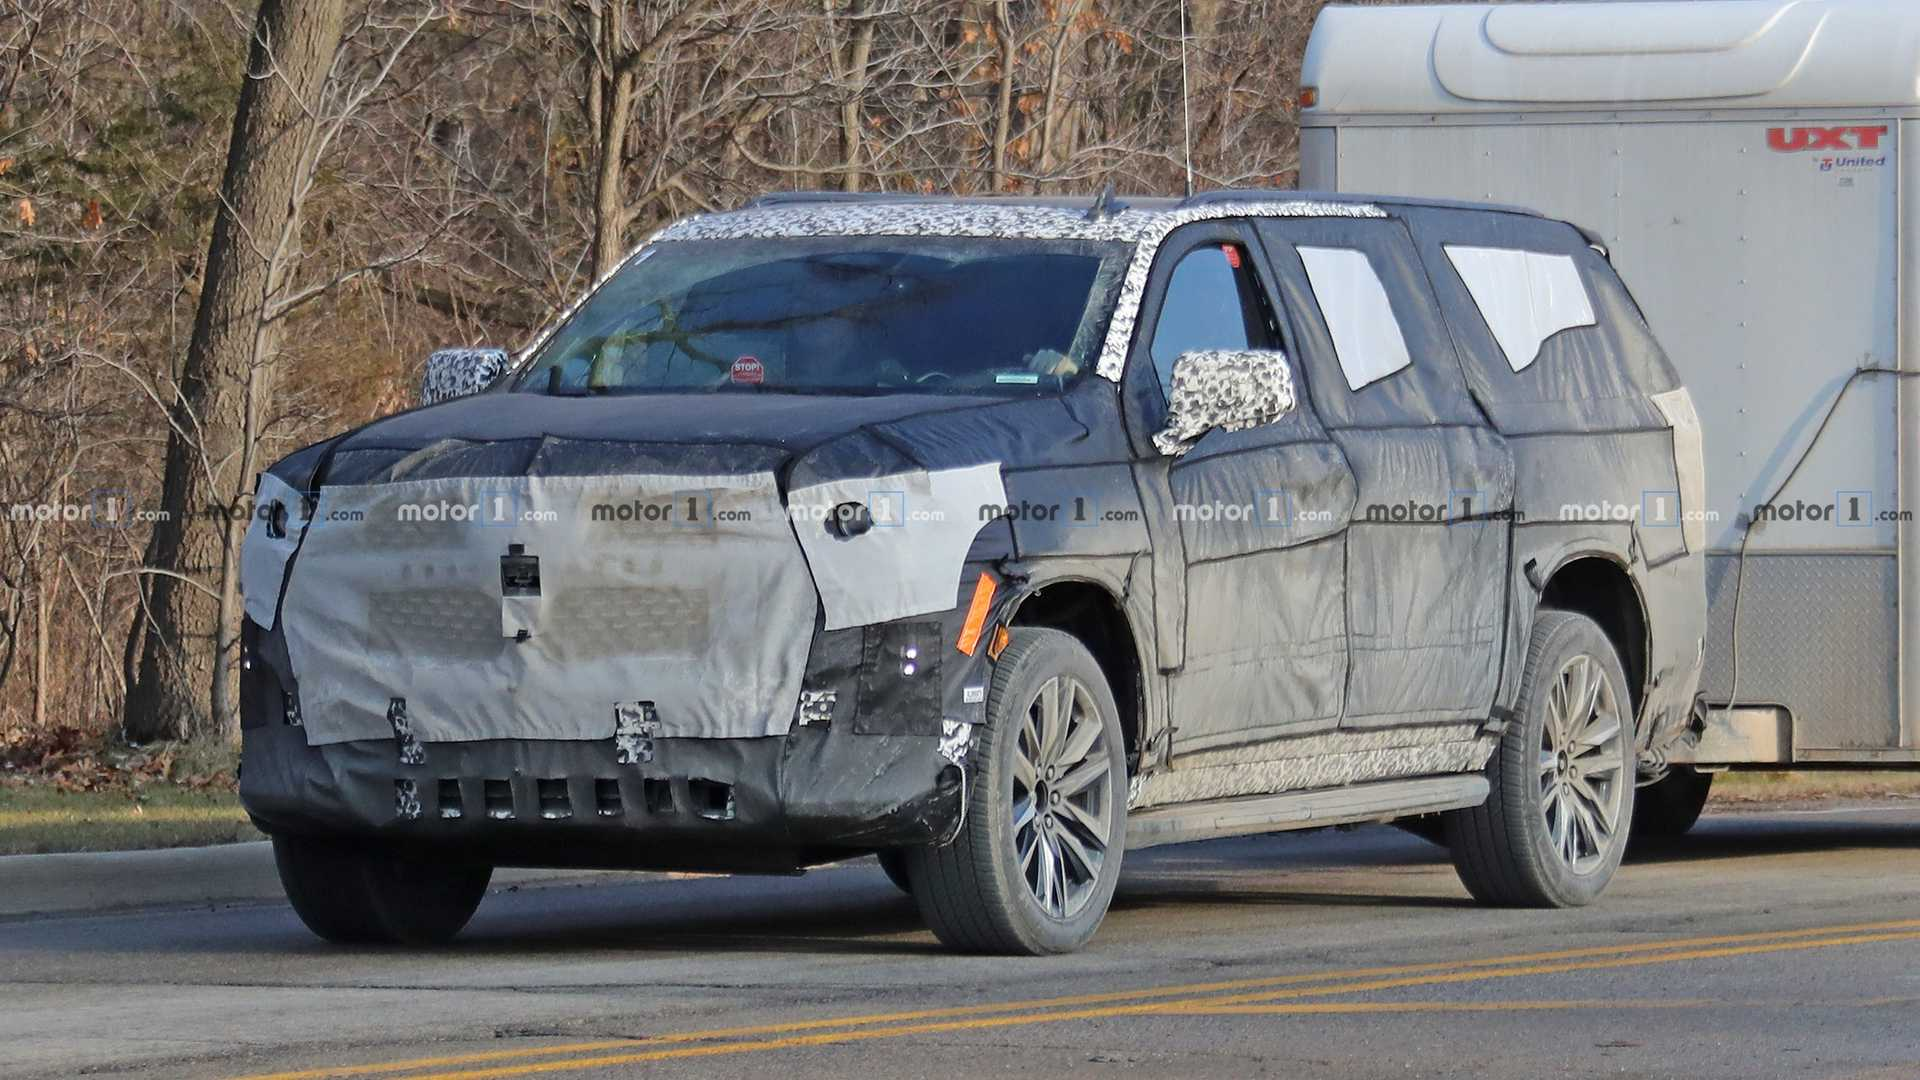 77 New 2020 Cadillac Escalade Images Rumors